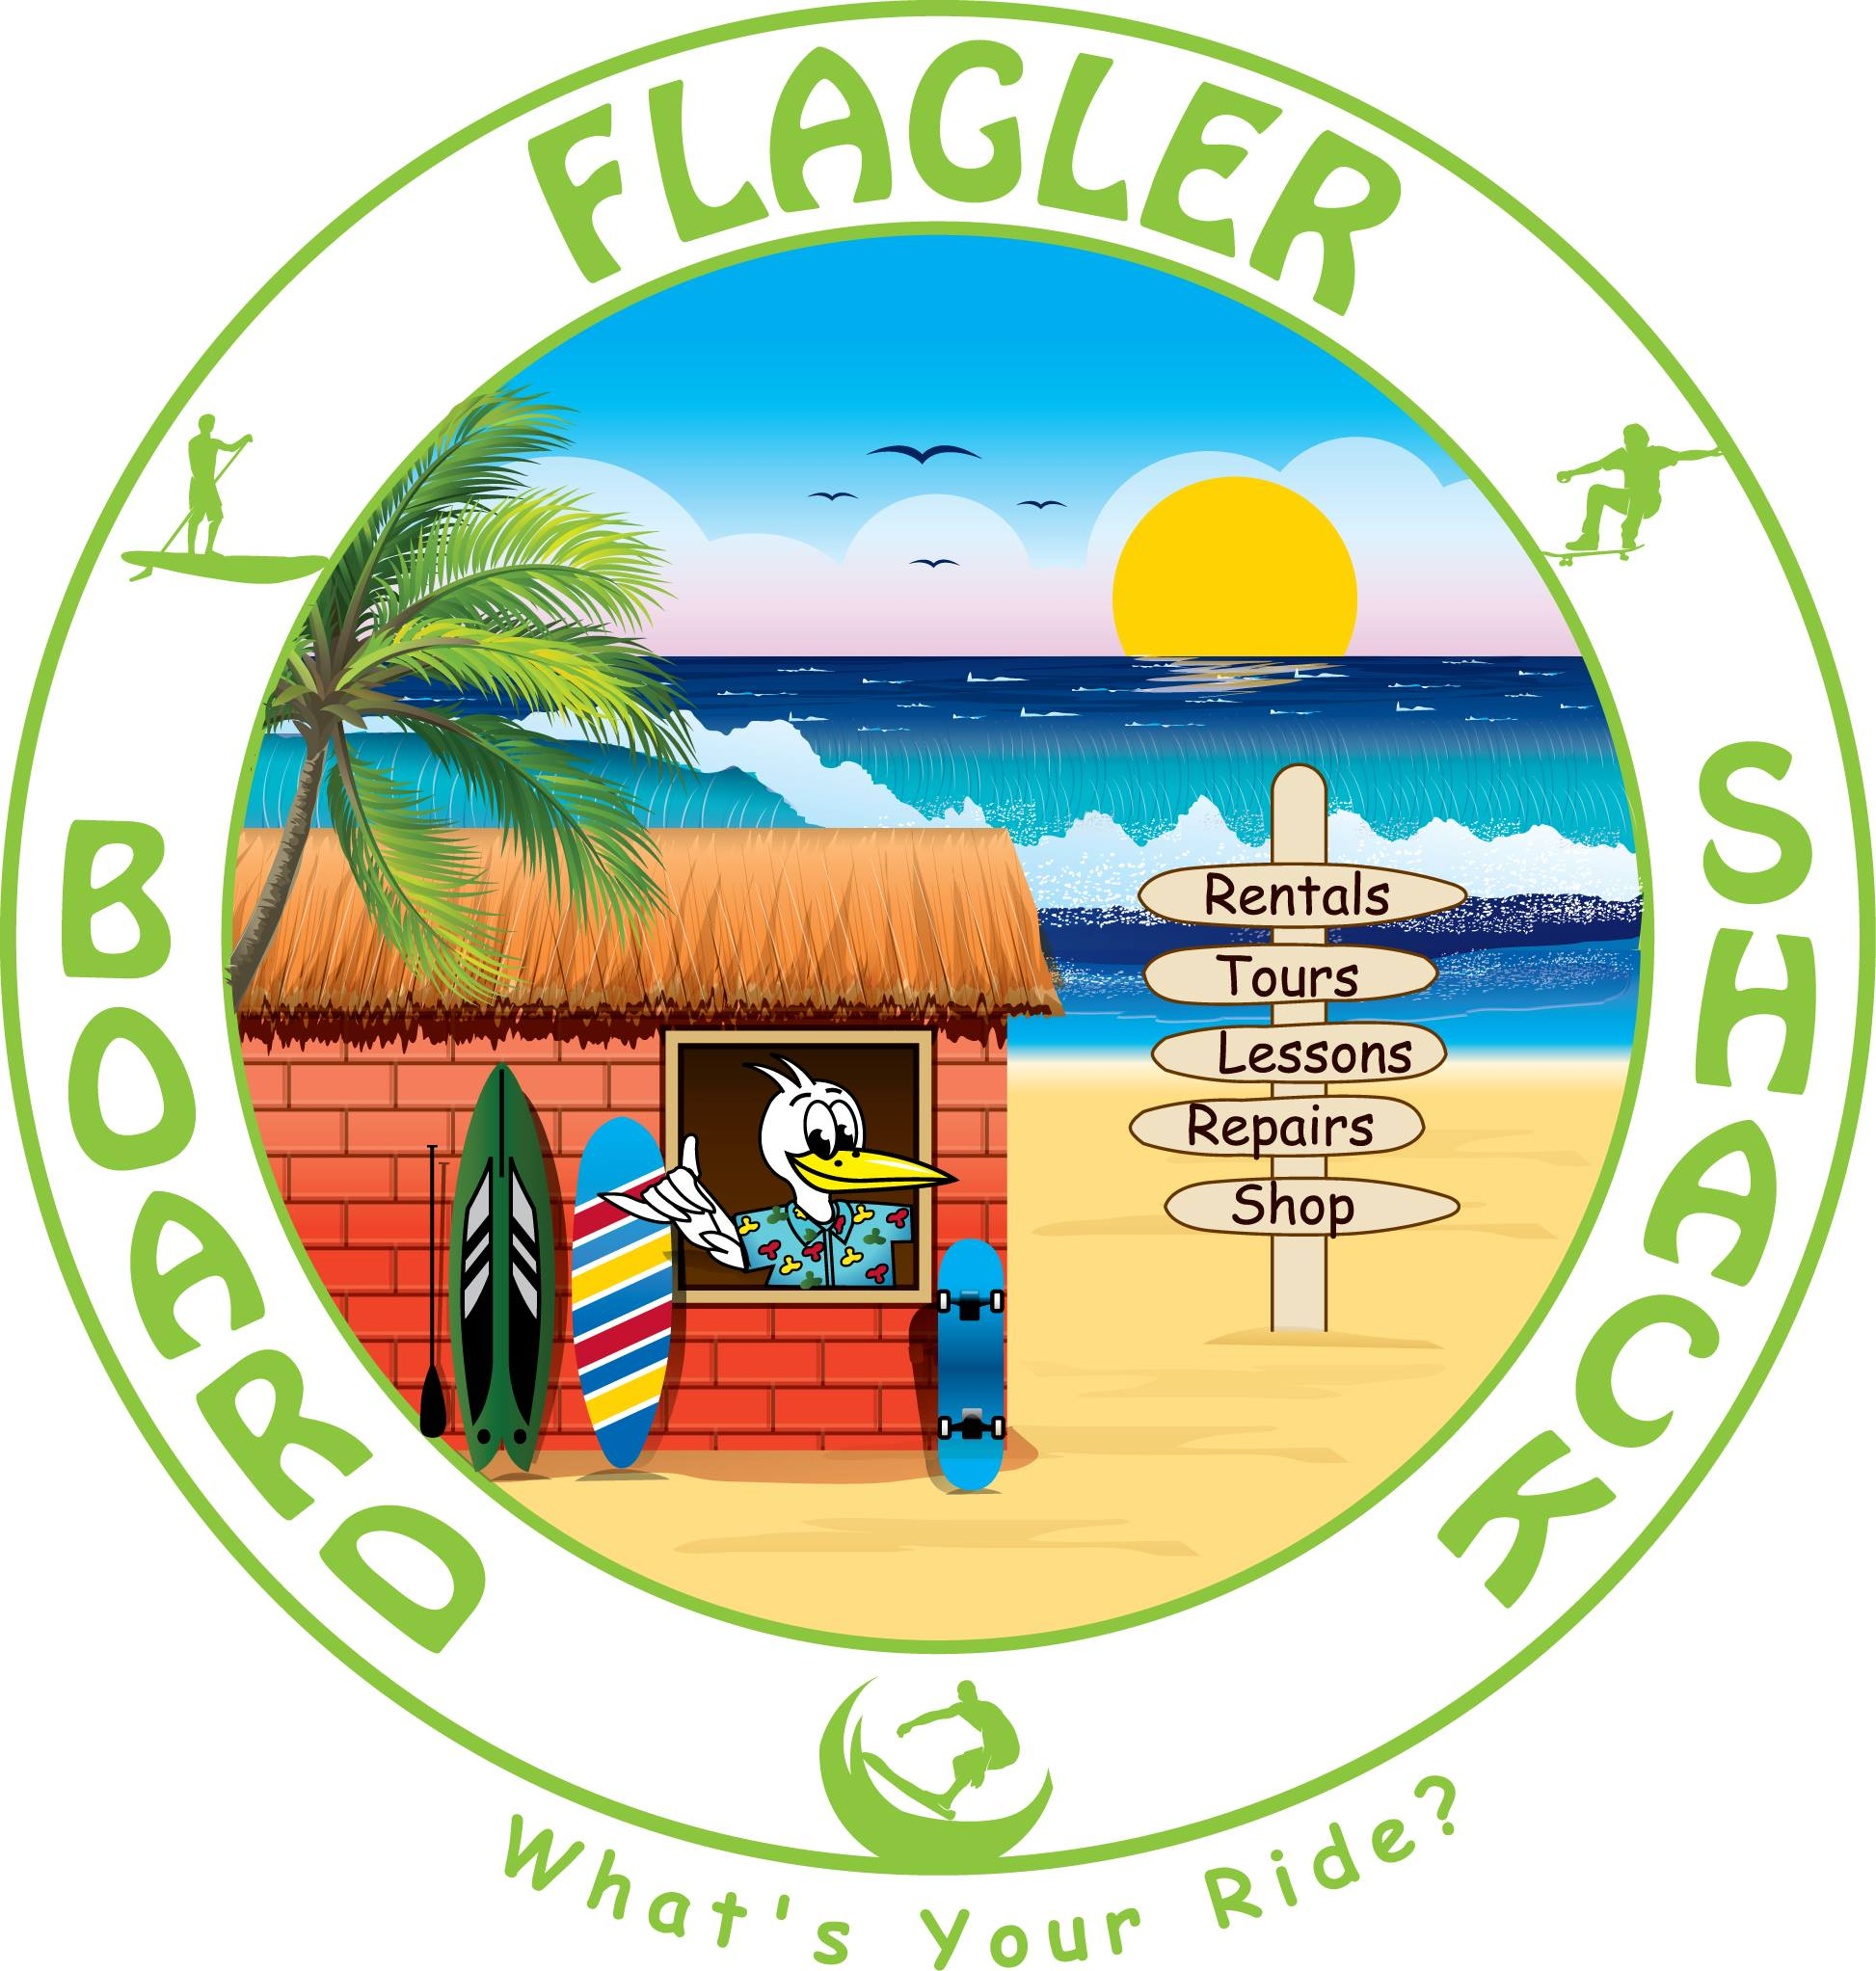 Flagler Board Shack